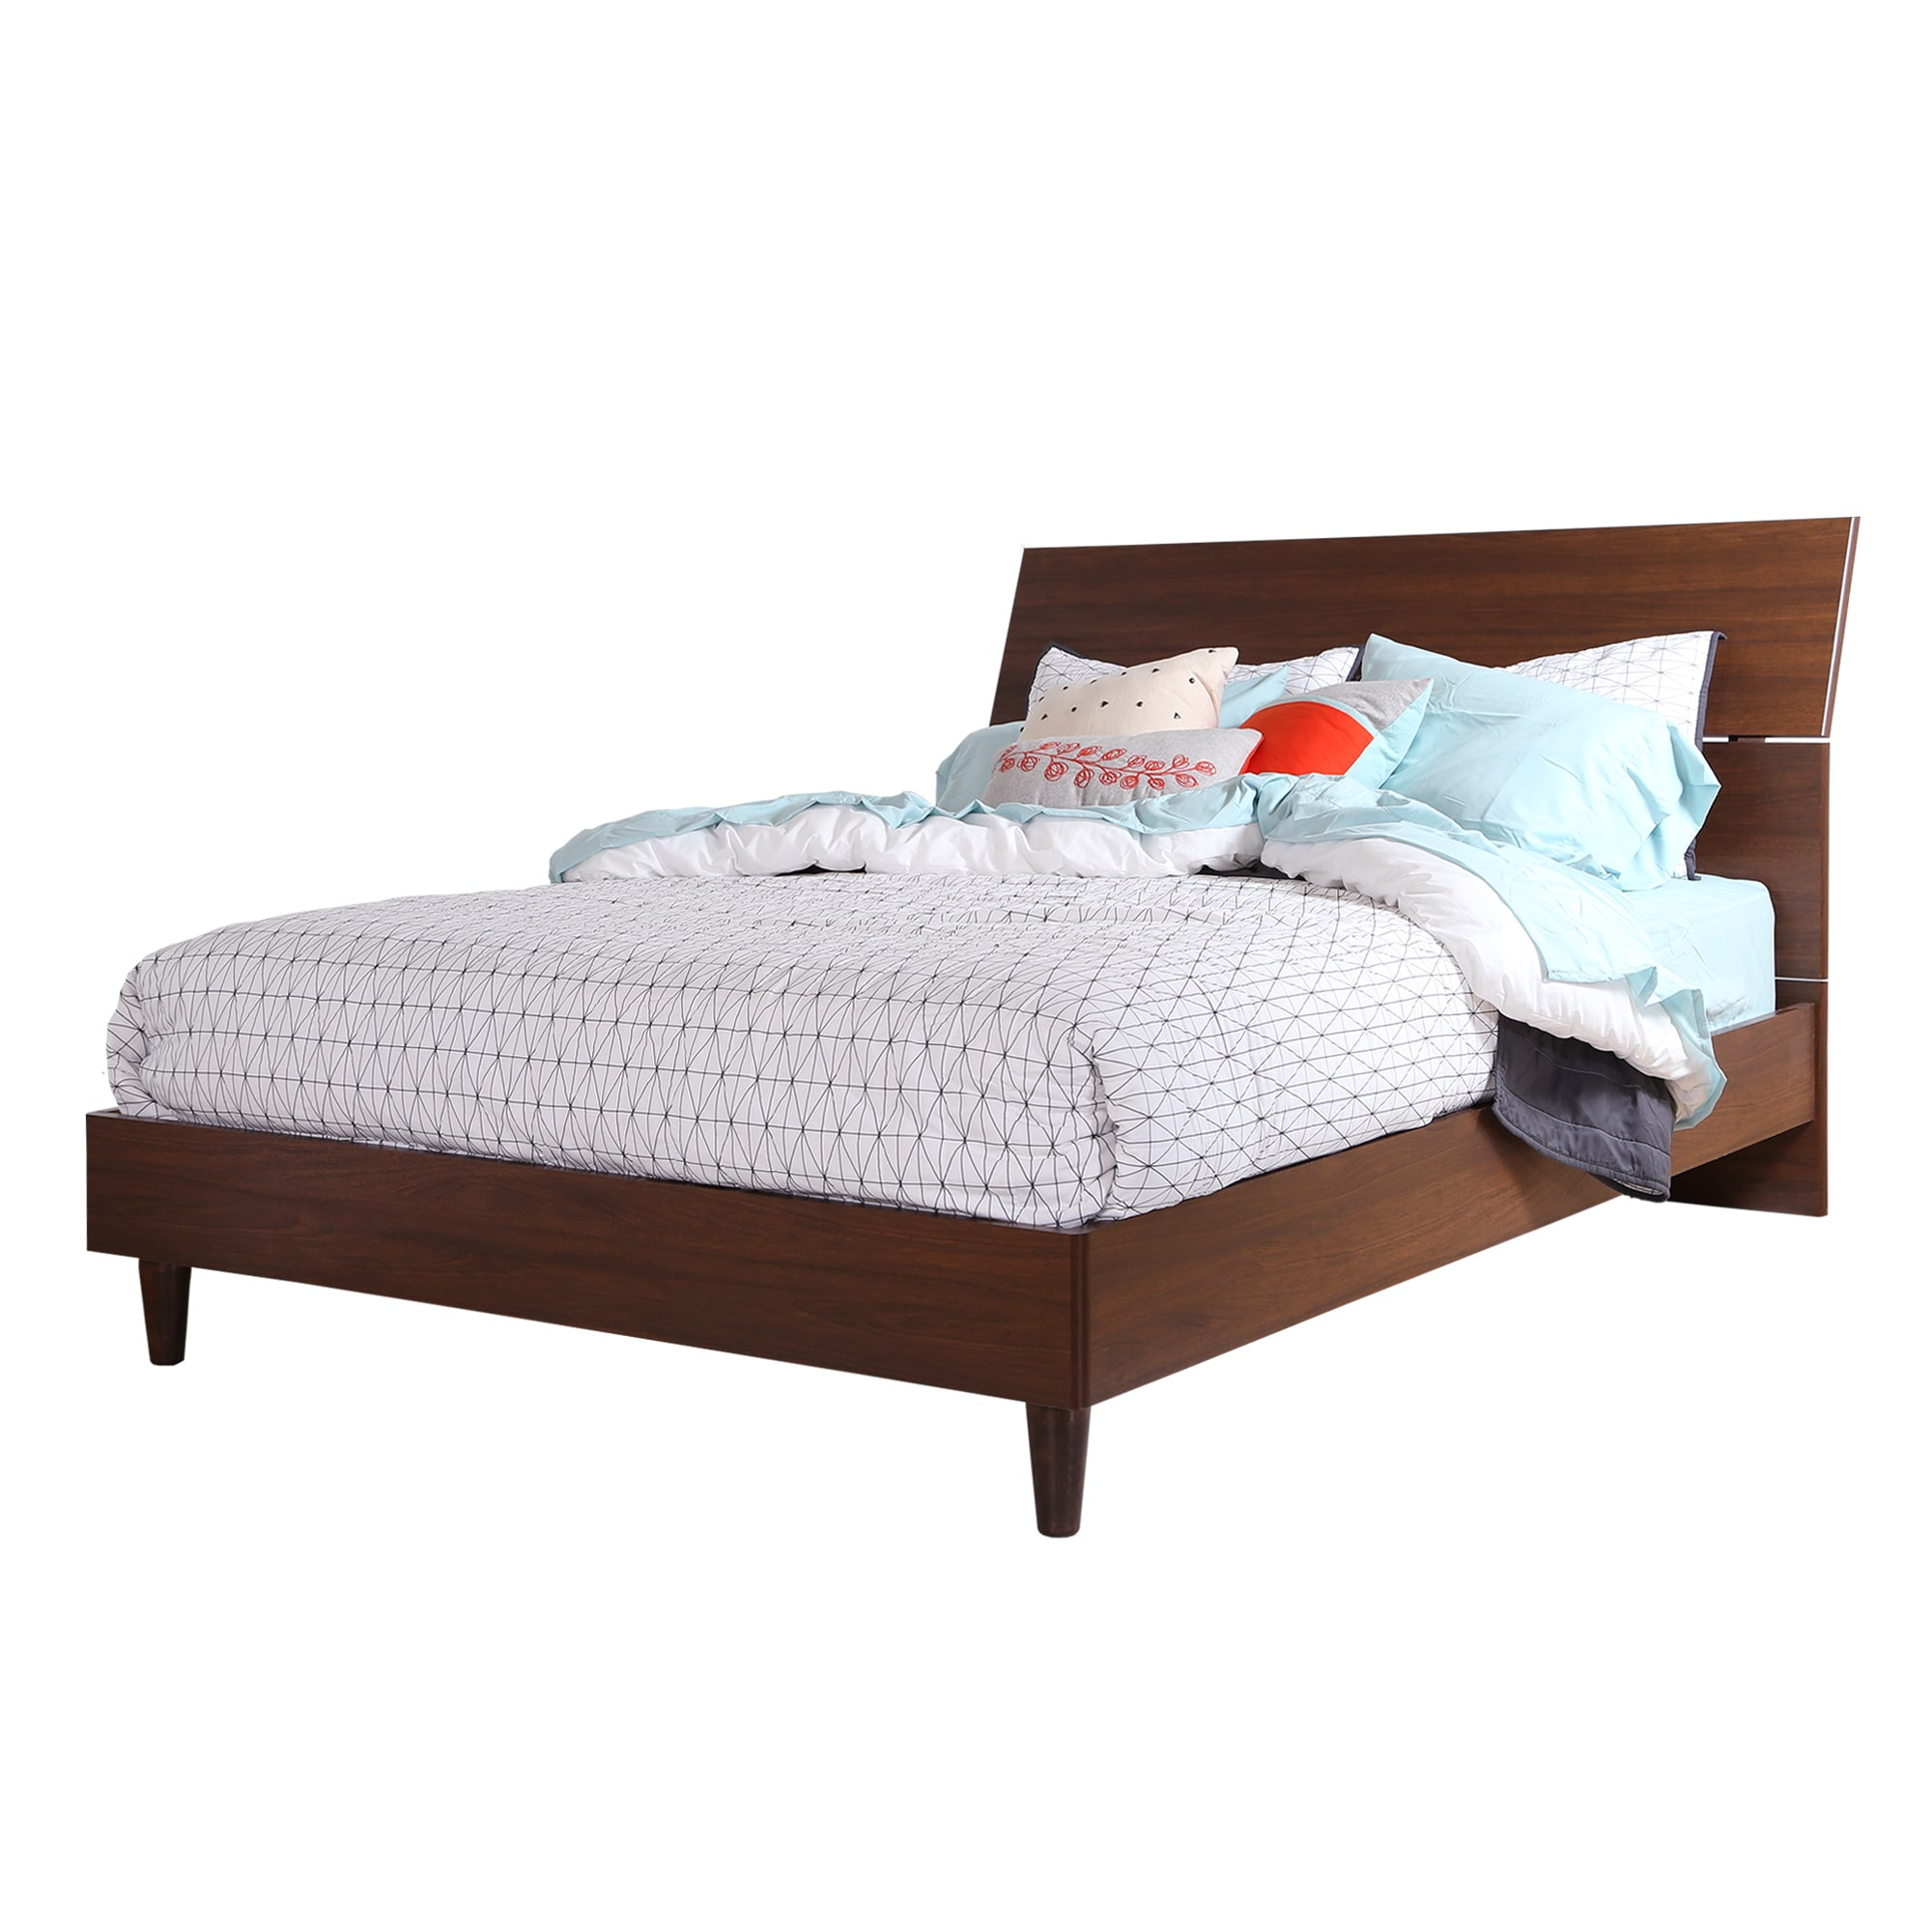 white bed holland protagonist platform with of modern storage tufted queen room headboard the